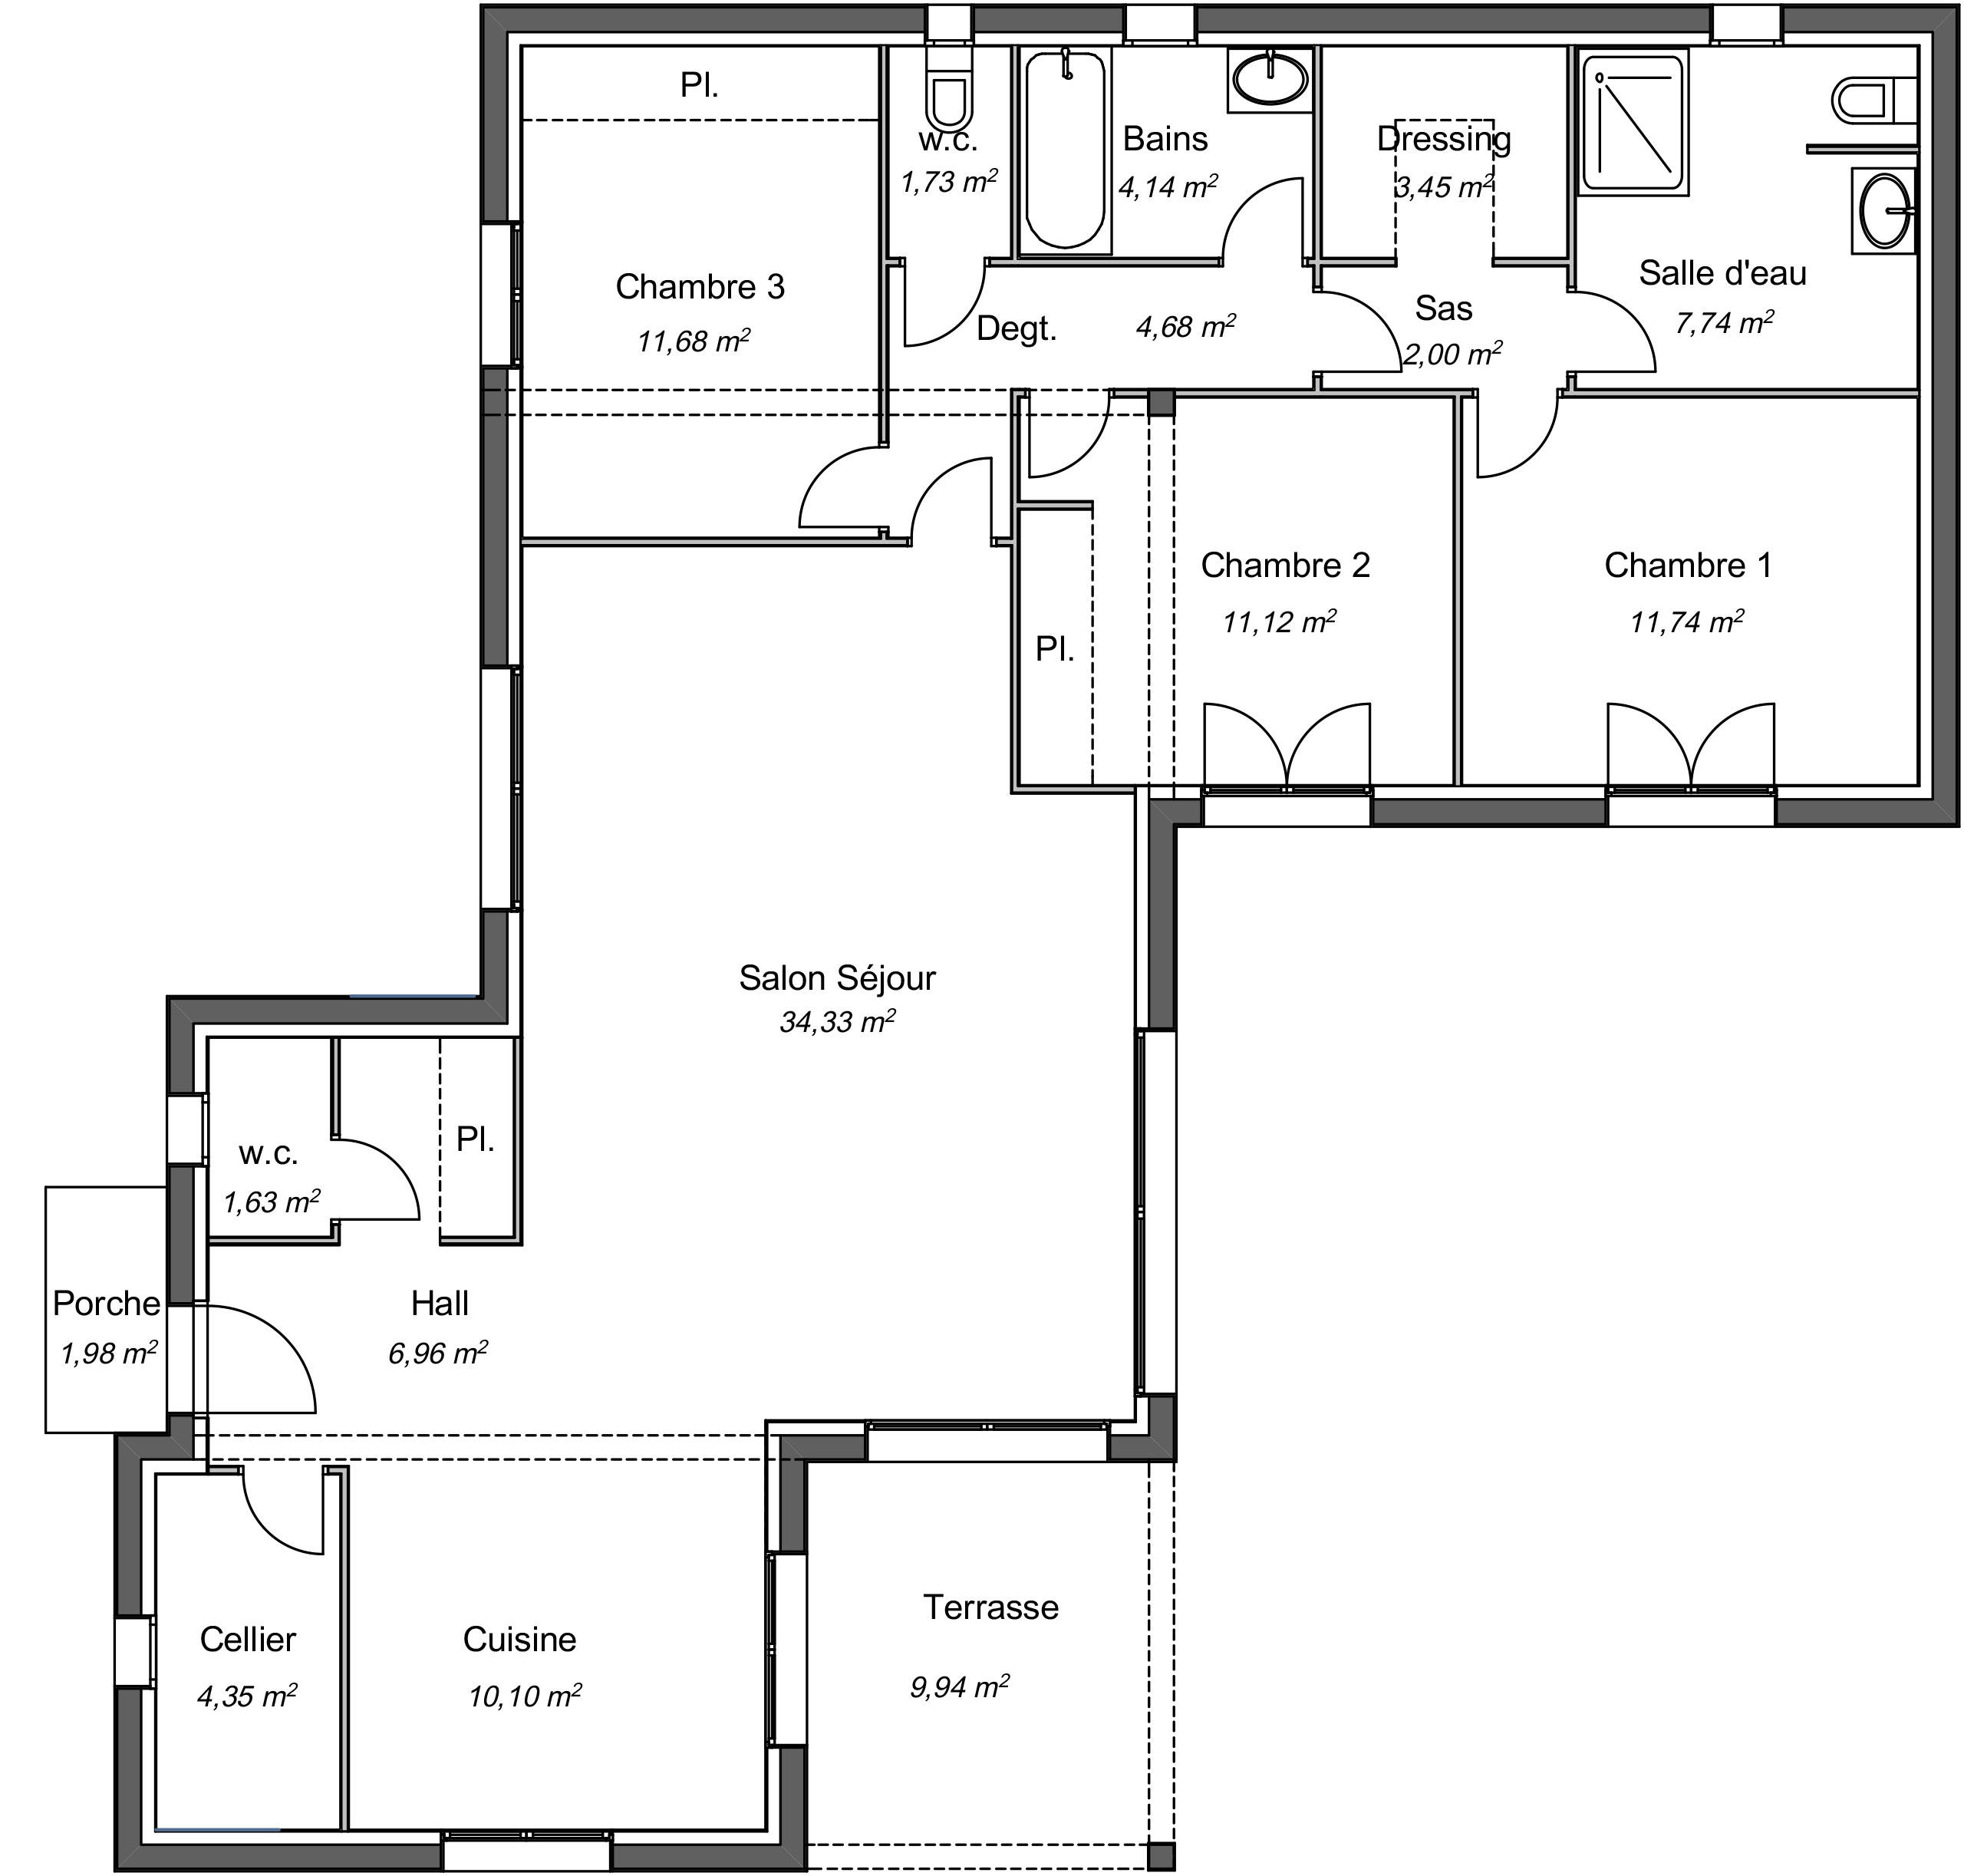 Maison contemporaine plain-pied Seringat avec plans ...